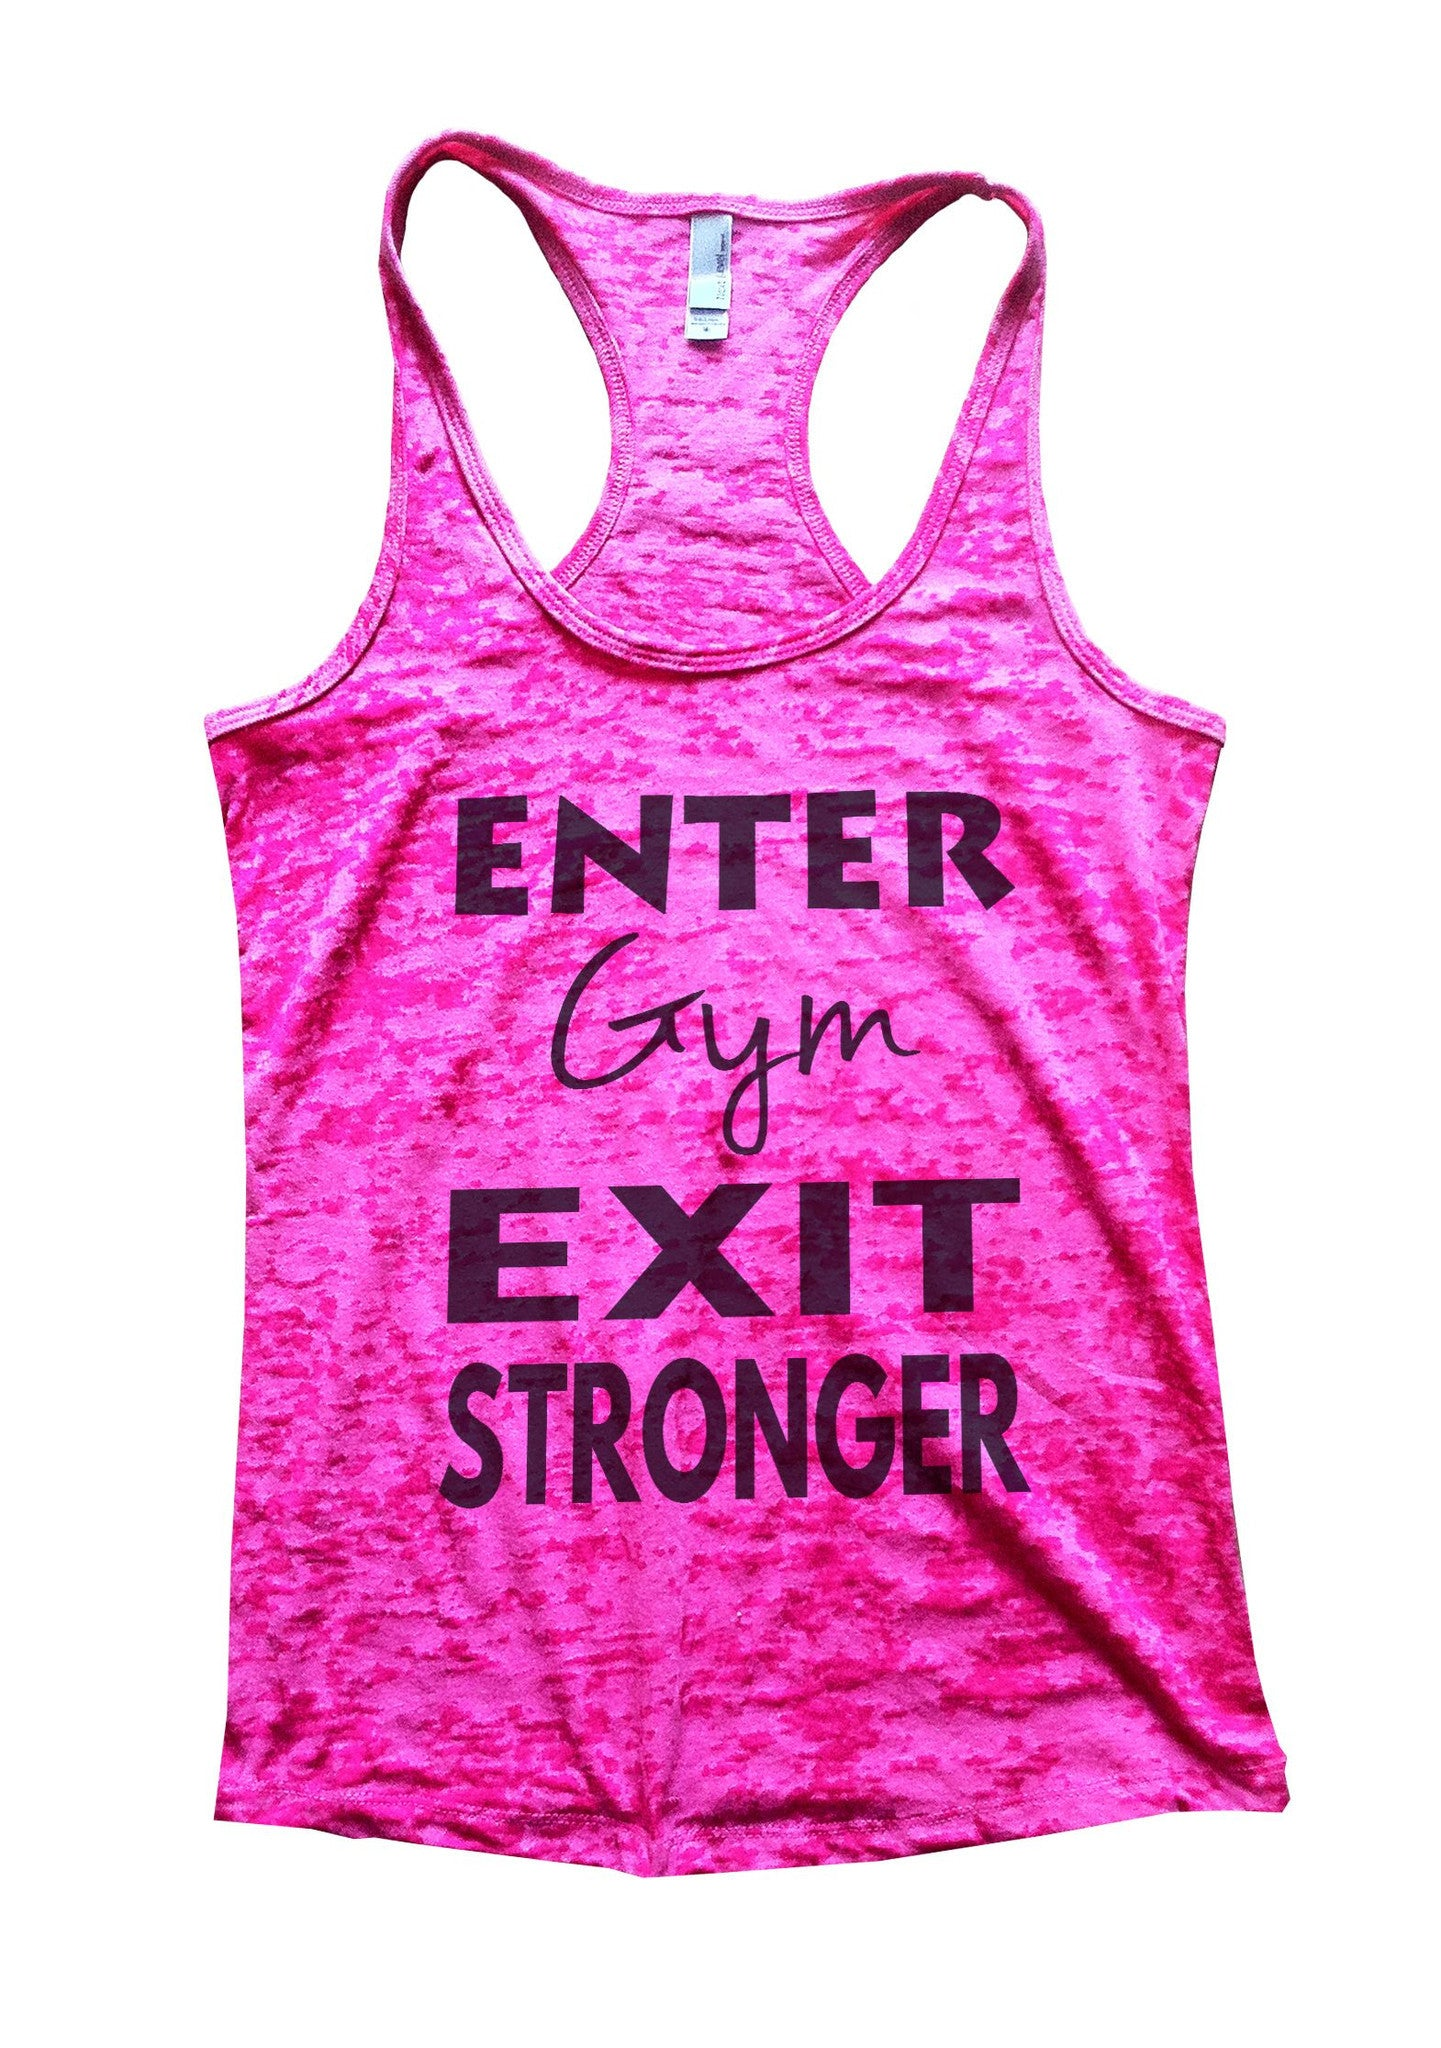 Enter Gym Exit Stronger Burnout Tank Top By BurnoutTankTops.com - 853 - Funny Shirts Tank Tops Burnouts and Triblends  - 5